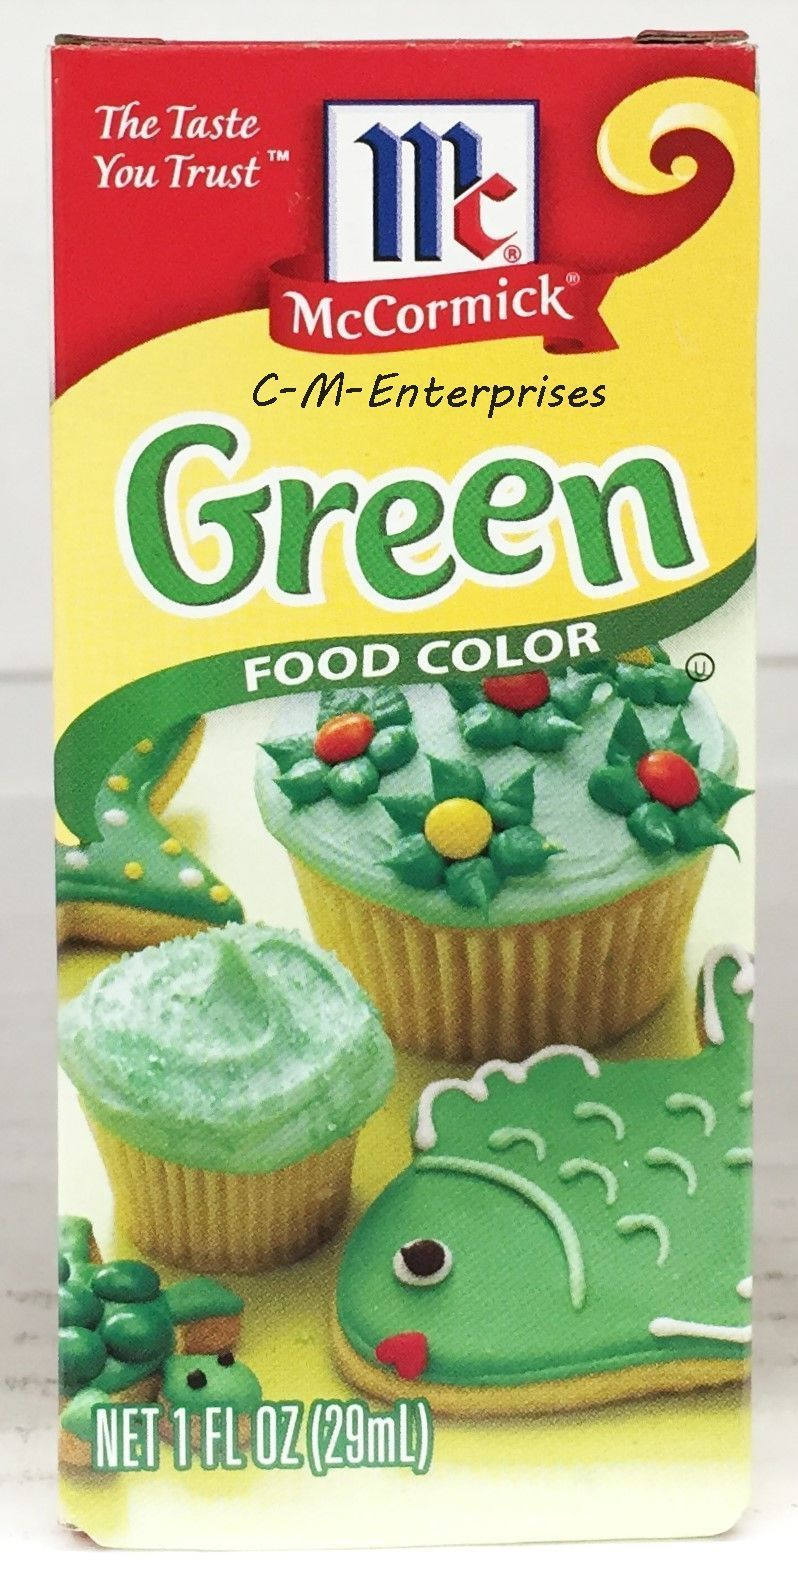 McCormick Green Food Coloring 1 oz Color and 50 similar items